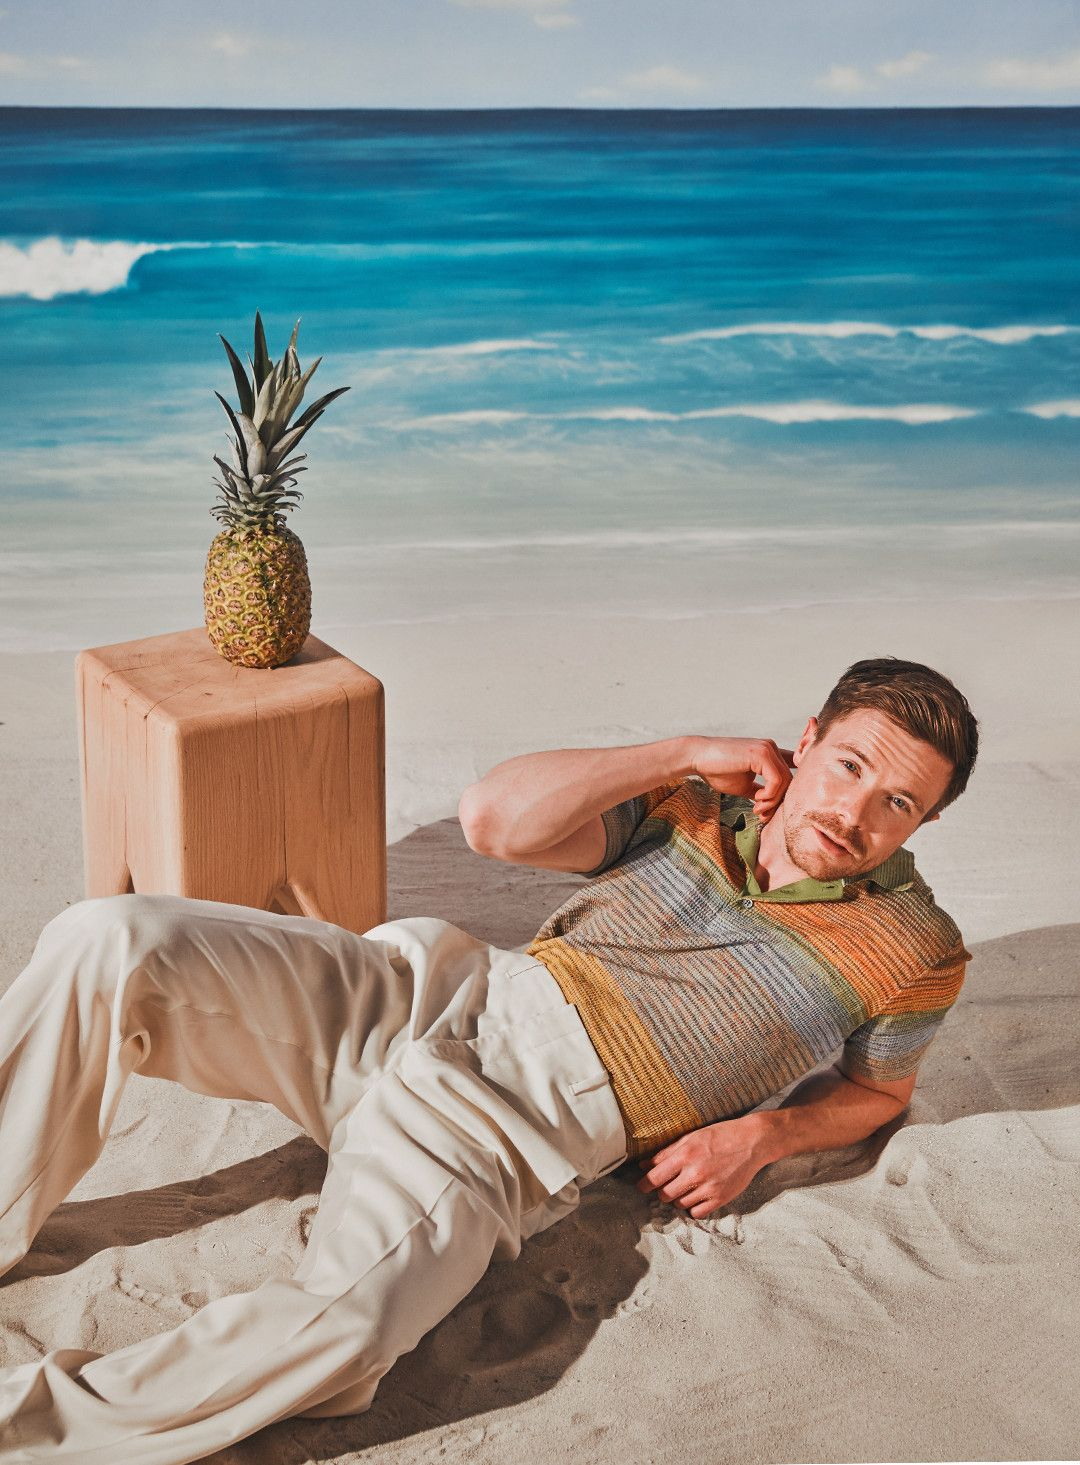 Joe Dempsie originally auditioned for three other Game of Thrones characters—including Jon Snow—before being cast as Gendry. Polo shirt by Missoni, trousers by Dior.